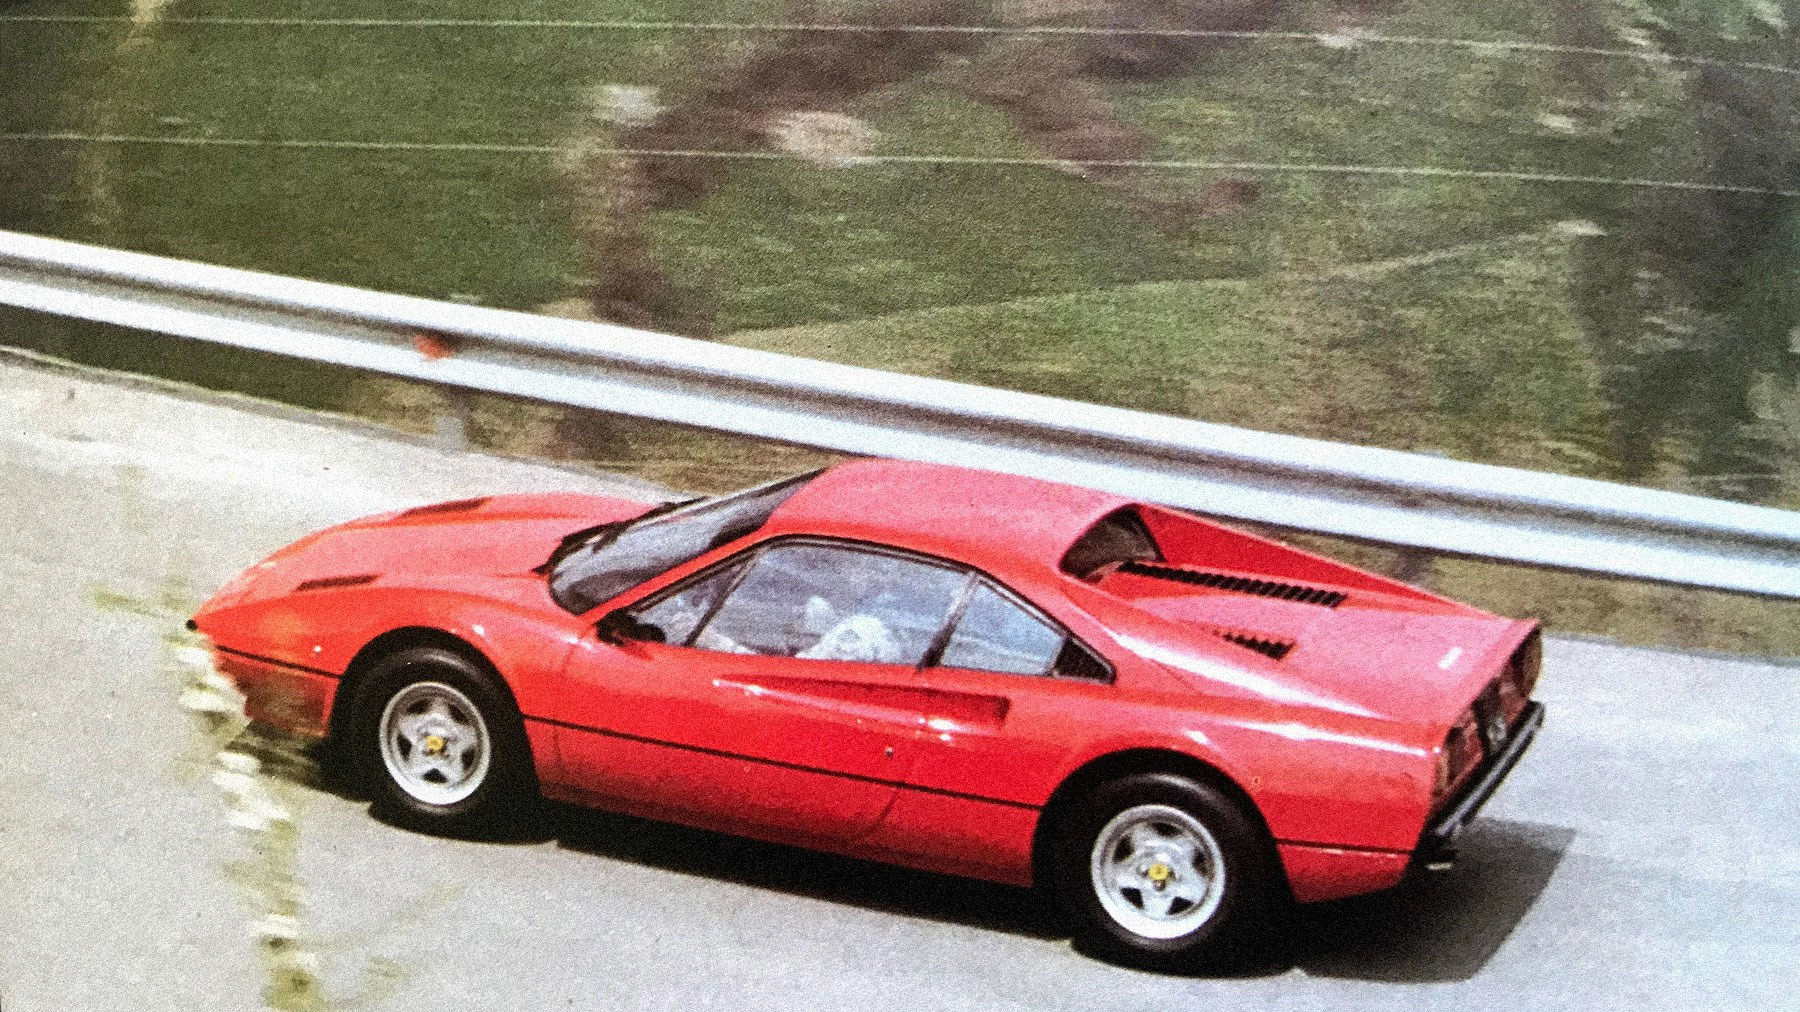 Ferrari 308 Gtb 1976 Review From Factory To The Mountains Car Magazine